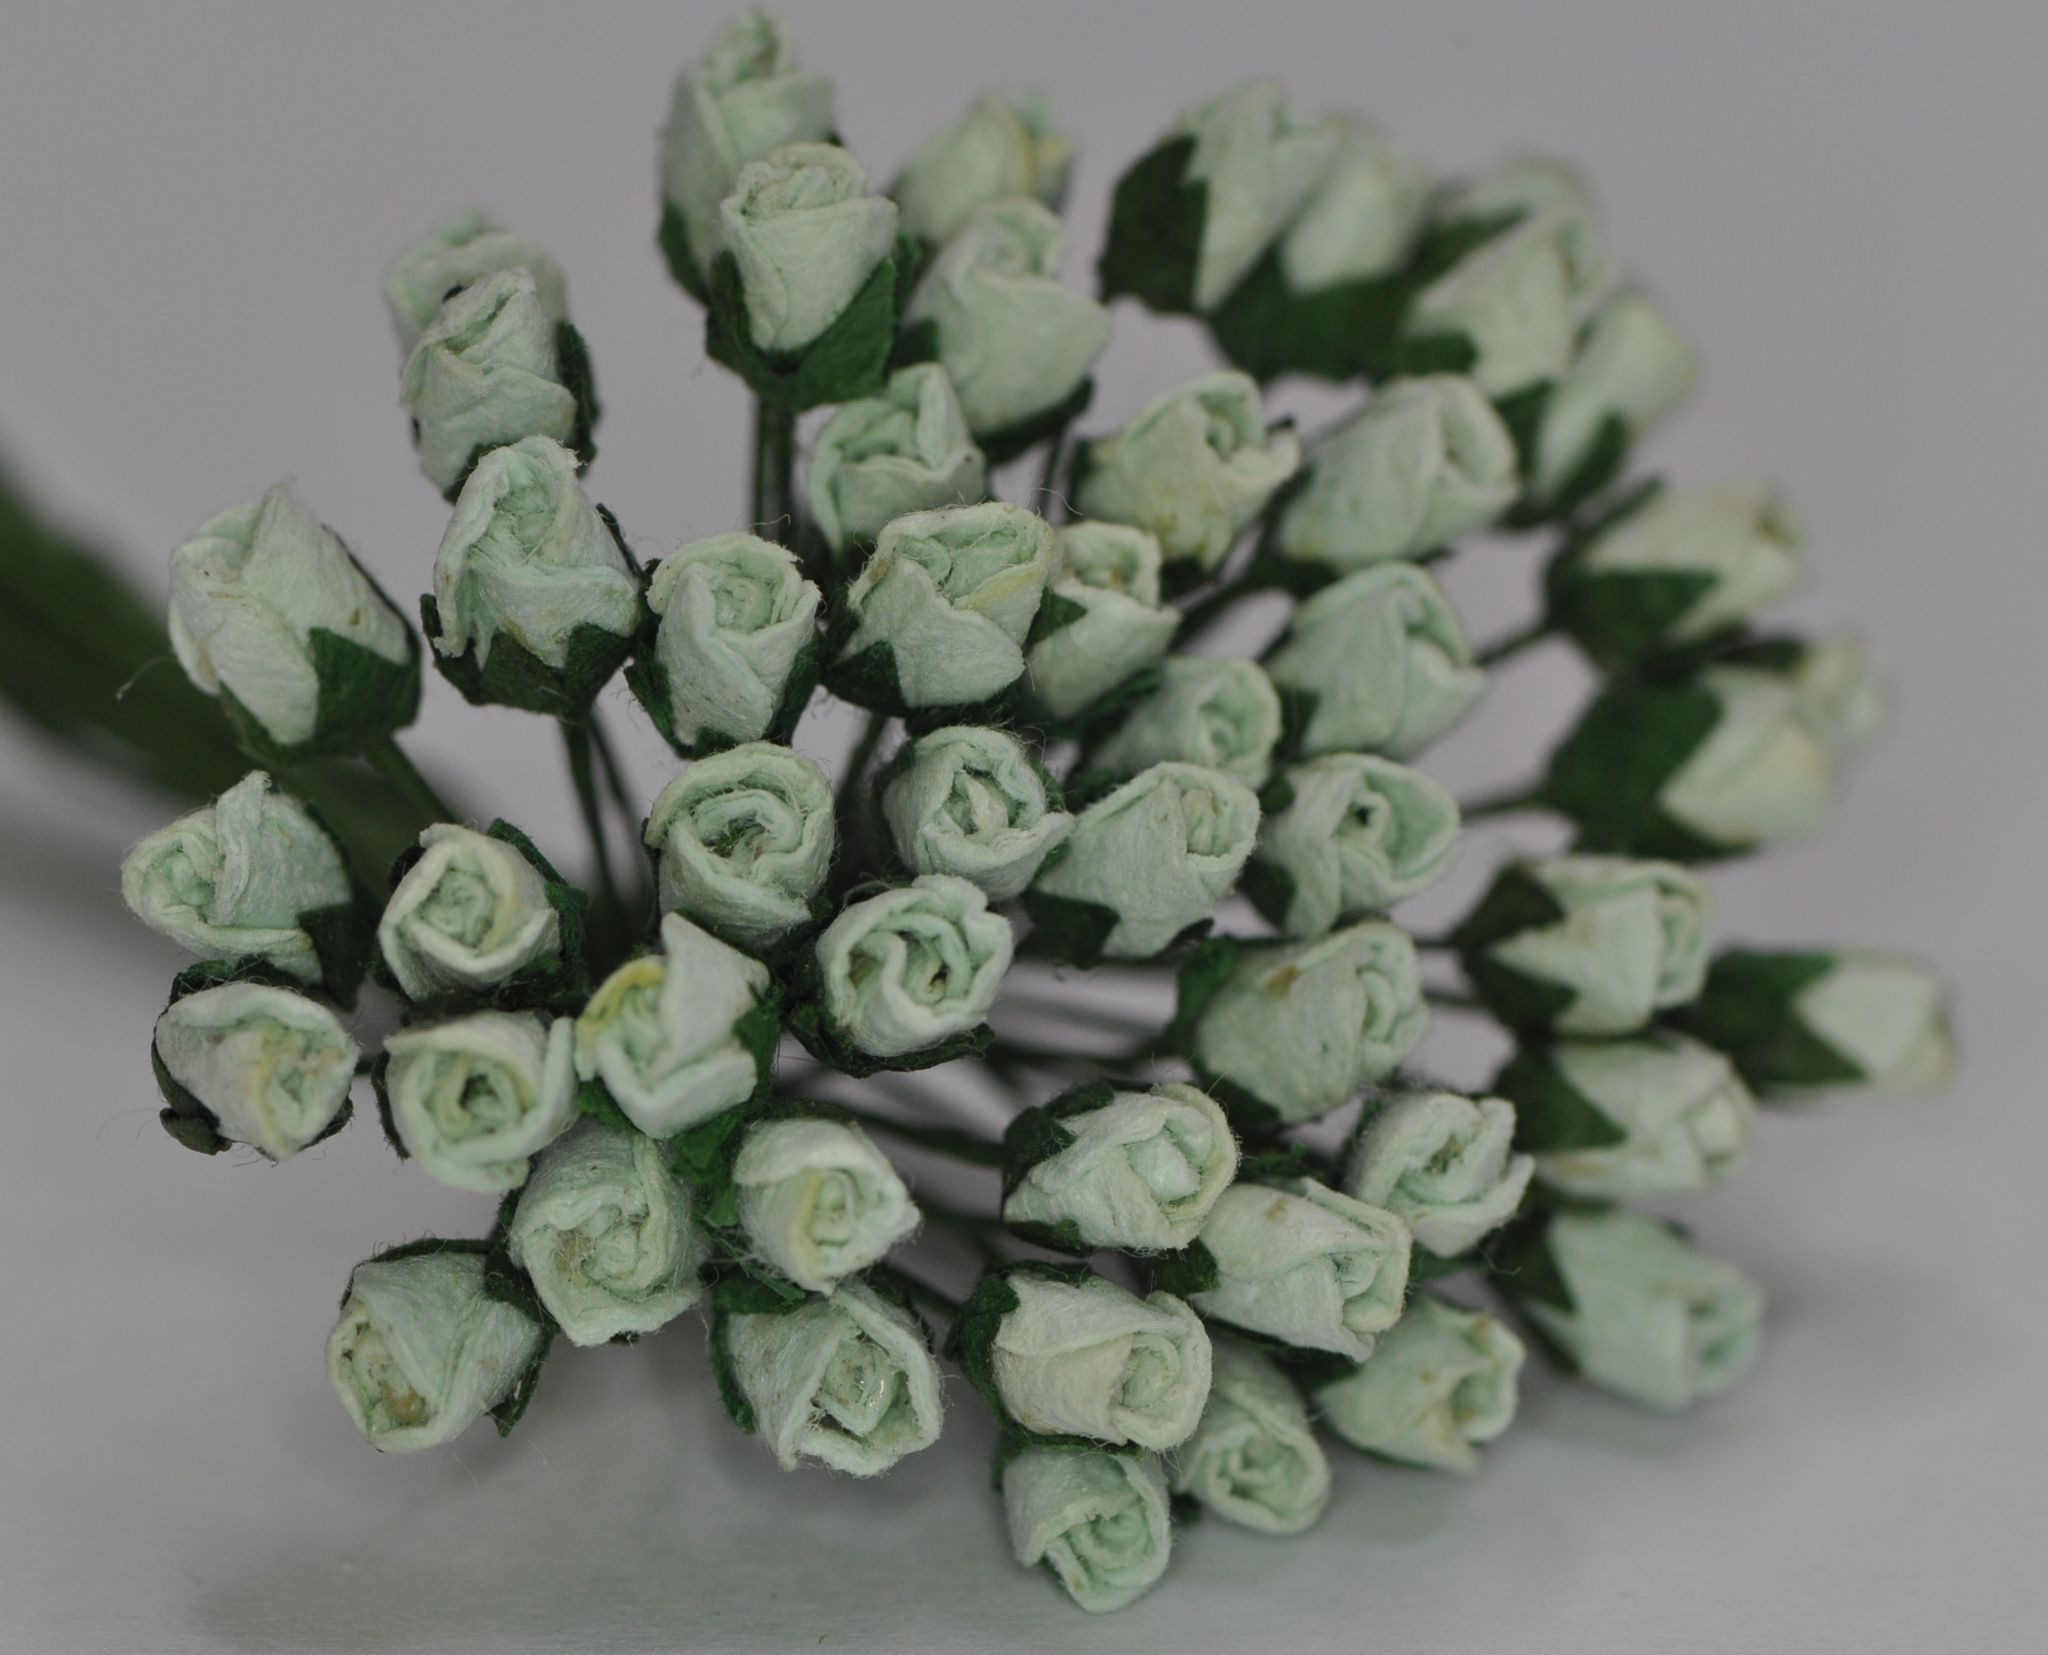 4mm Mint Green Rose Buds Mulberry Paper Flowers